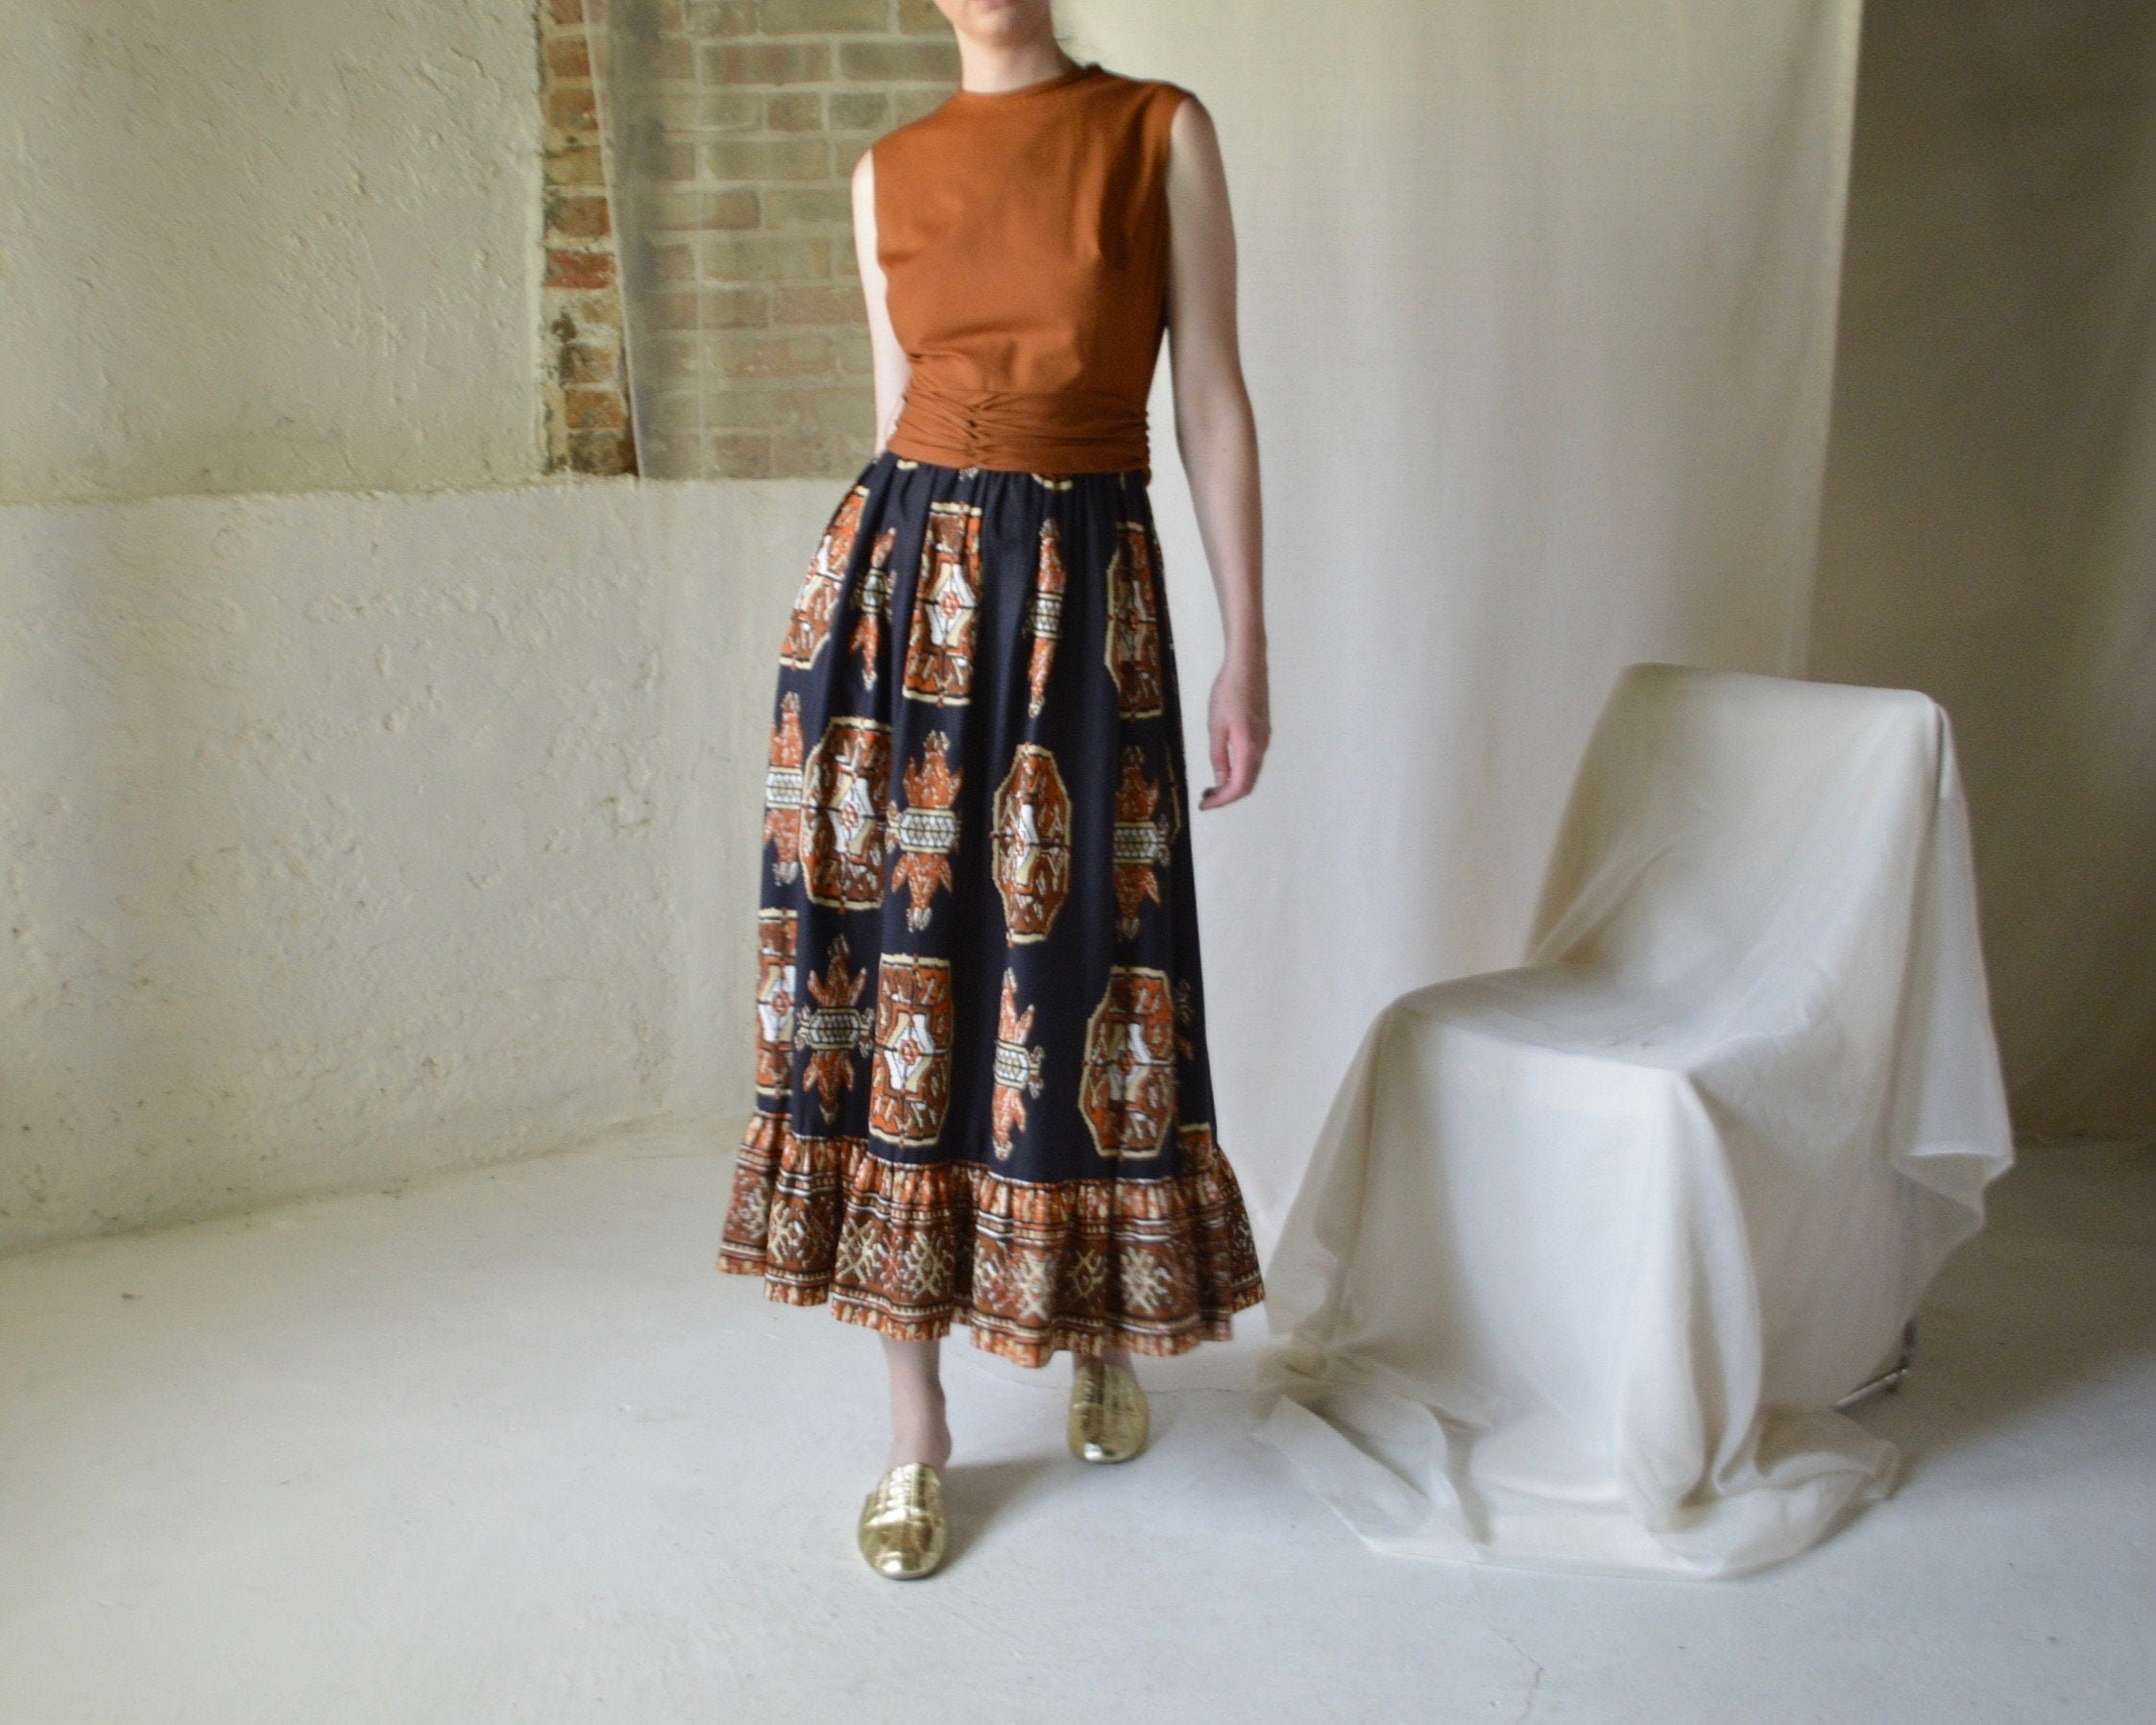 Vintage Scarf Styles -1920s to 1960s 70S Ruffled Southwest Print Maxi Dress $165.00 AT vintagedancer.com